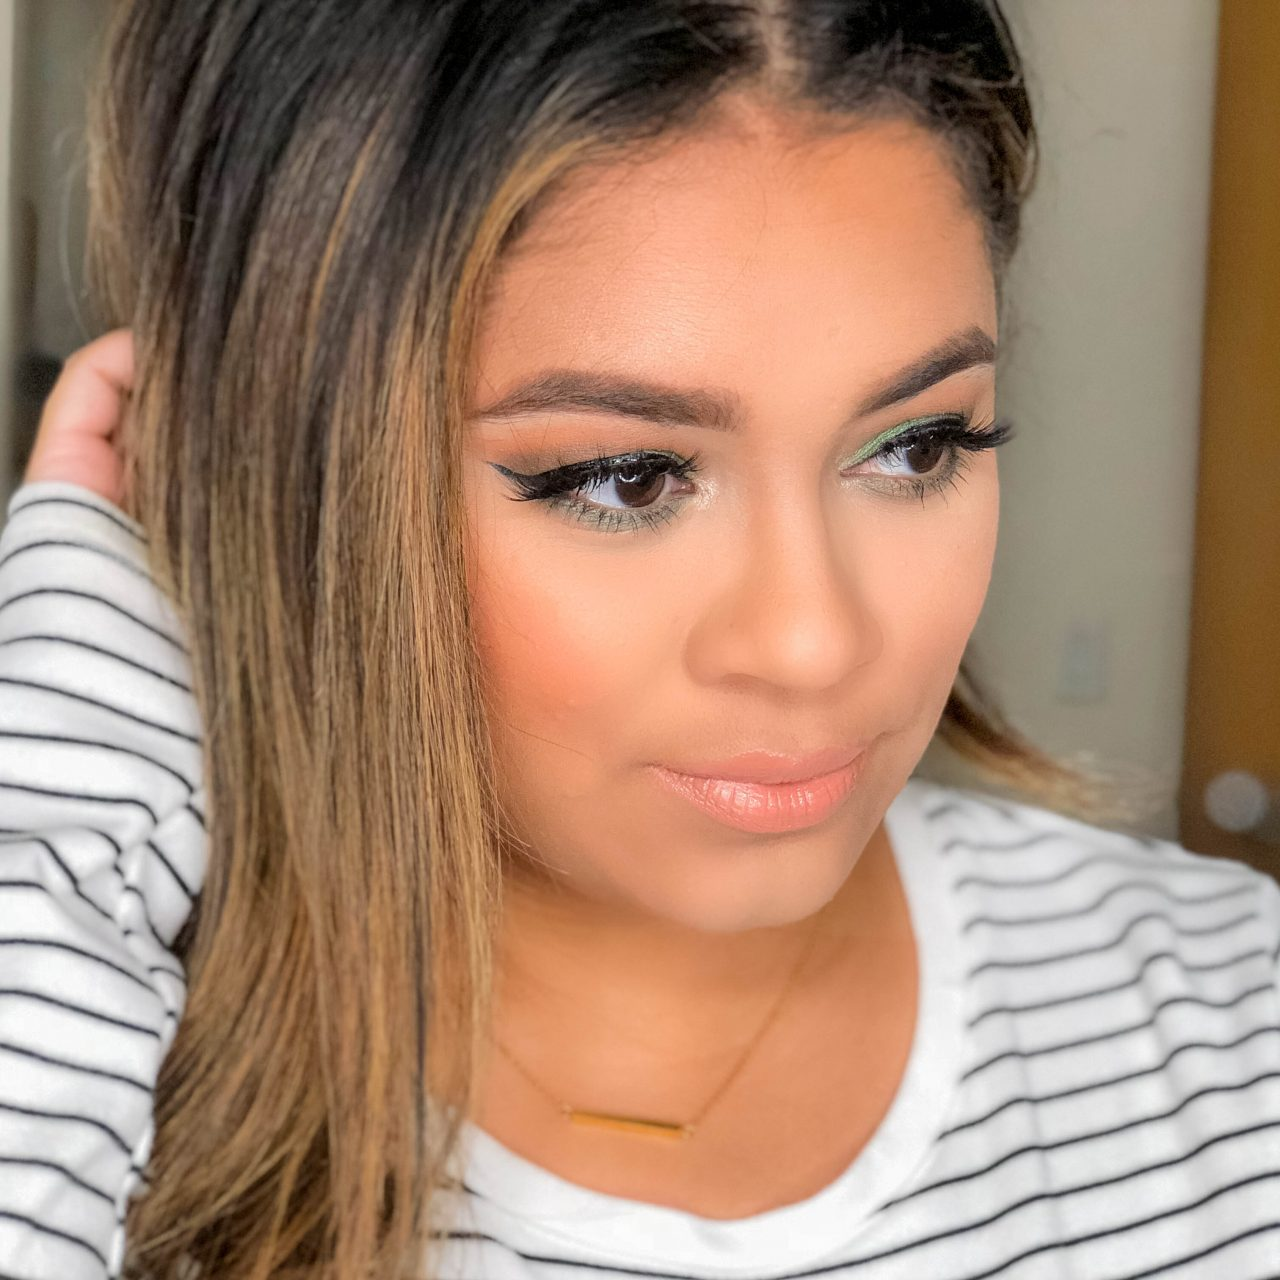 Olive Green Eye Look Using the Urban Decay Elements Palette